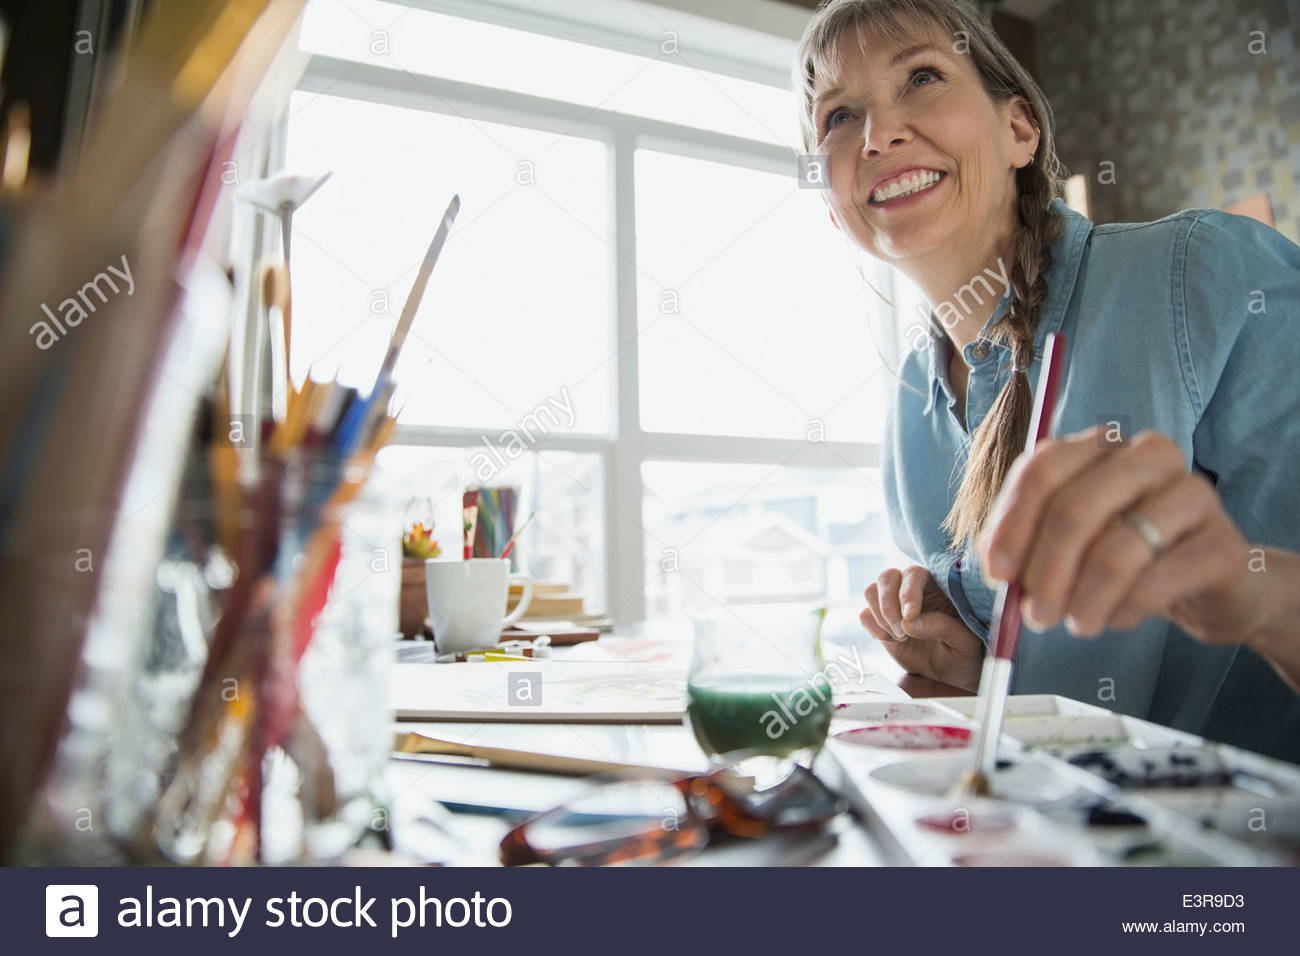 Woman painting at desk - Stock Image